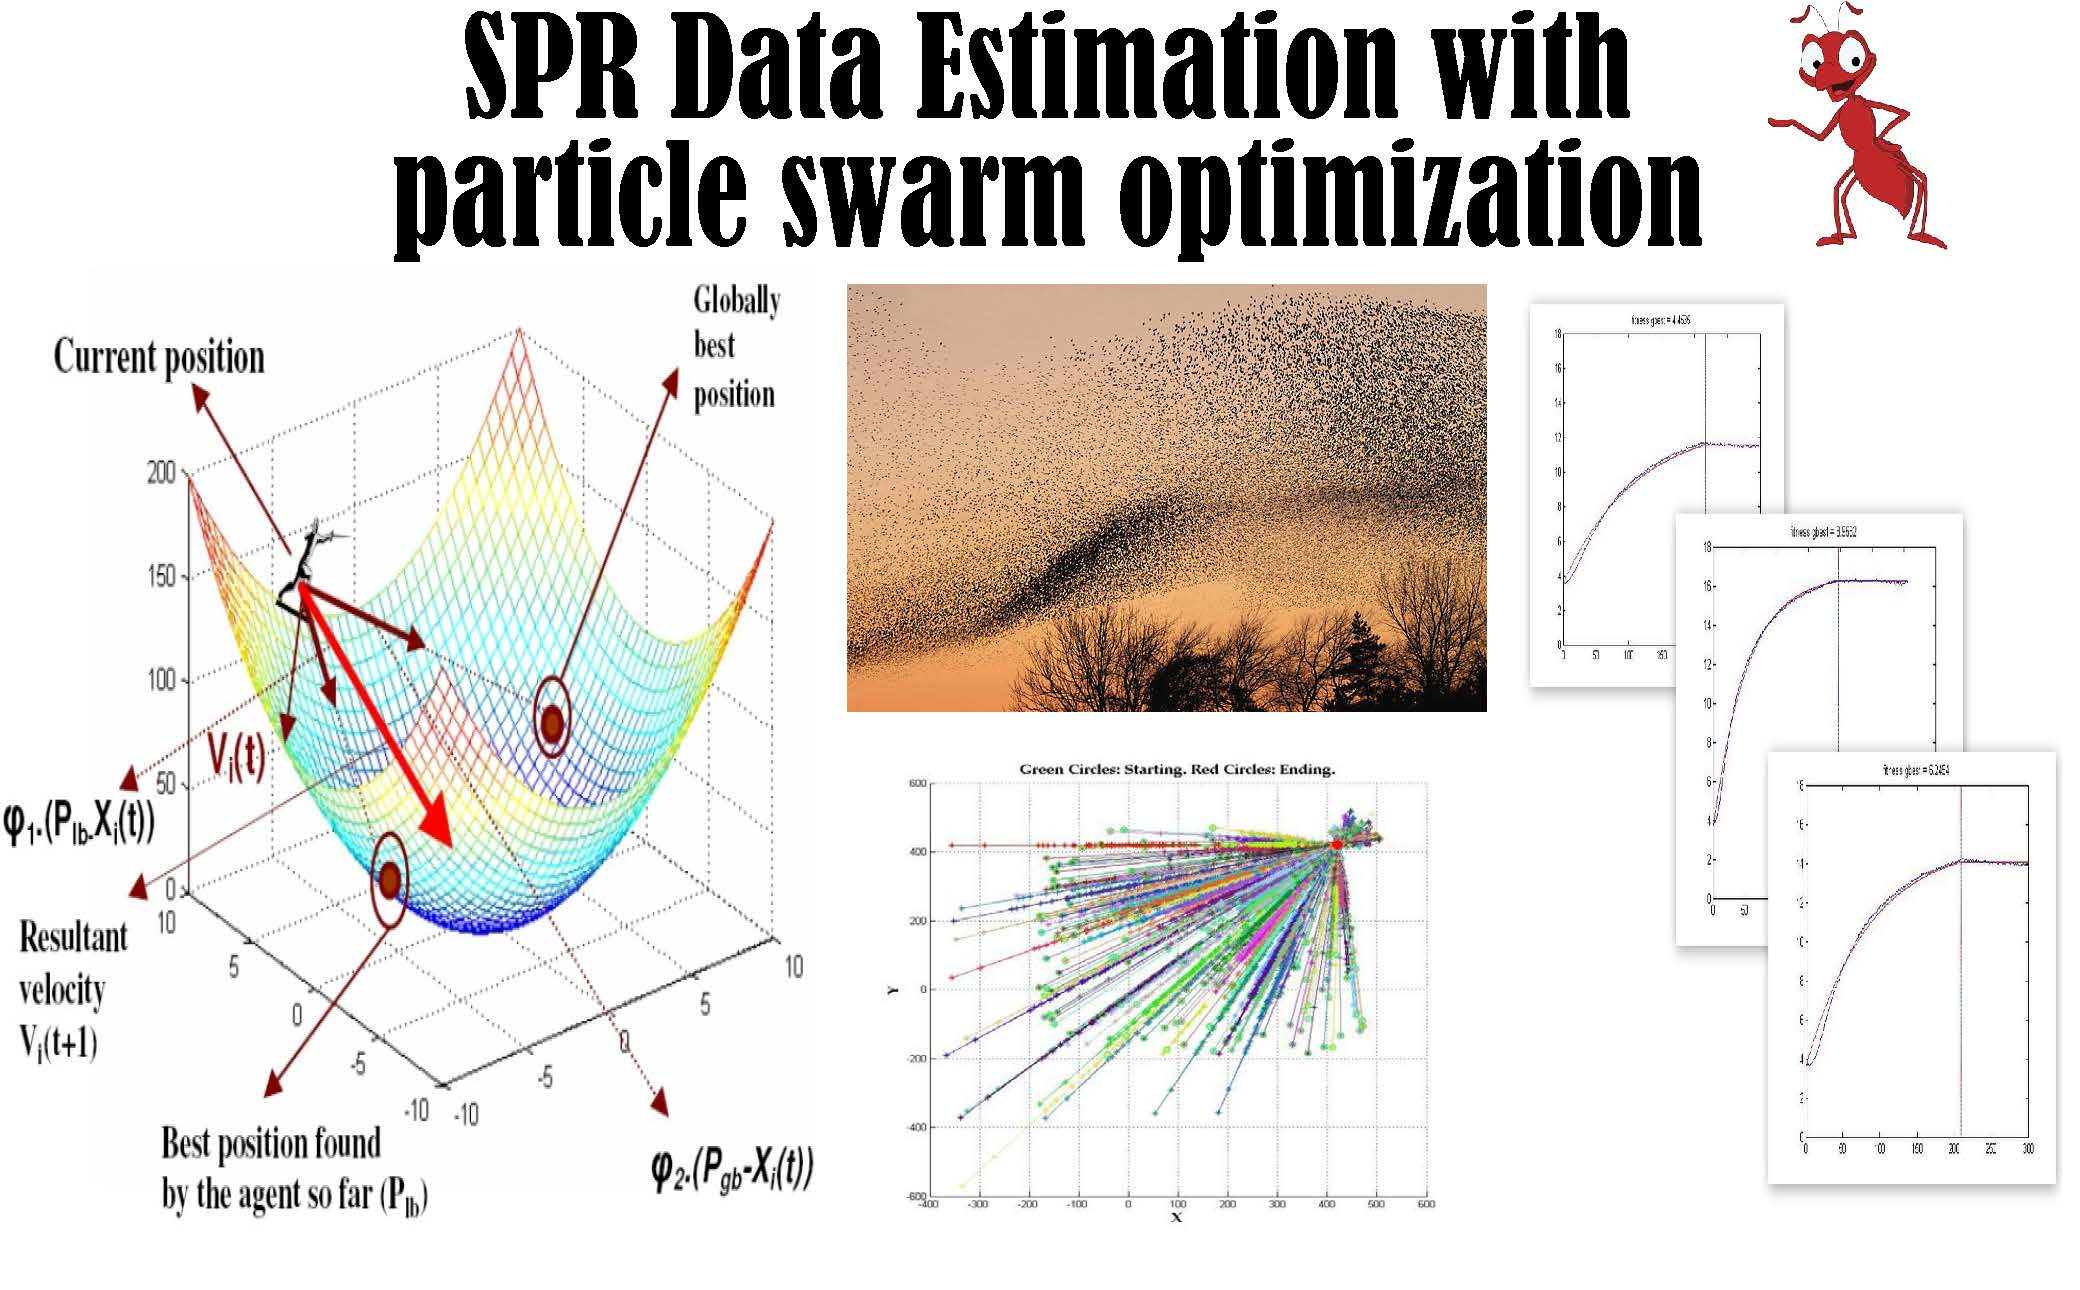 an analysis of particle swarm optimizers phd thesis In numerical optimization, meta-optimization is the use of one optimization method to tune another optimization method  meta-optimization of particle swarm optimization was done by meissner et al, pedersen and chipperfield, and mason et al.